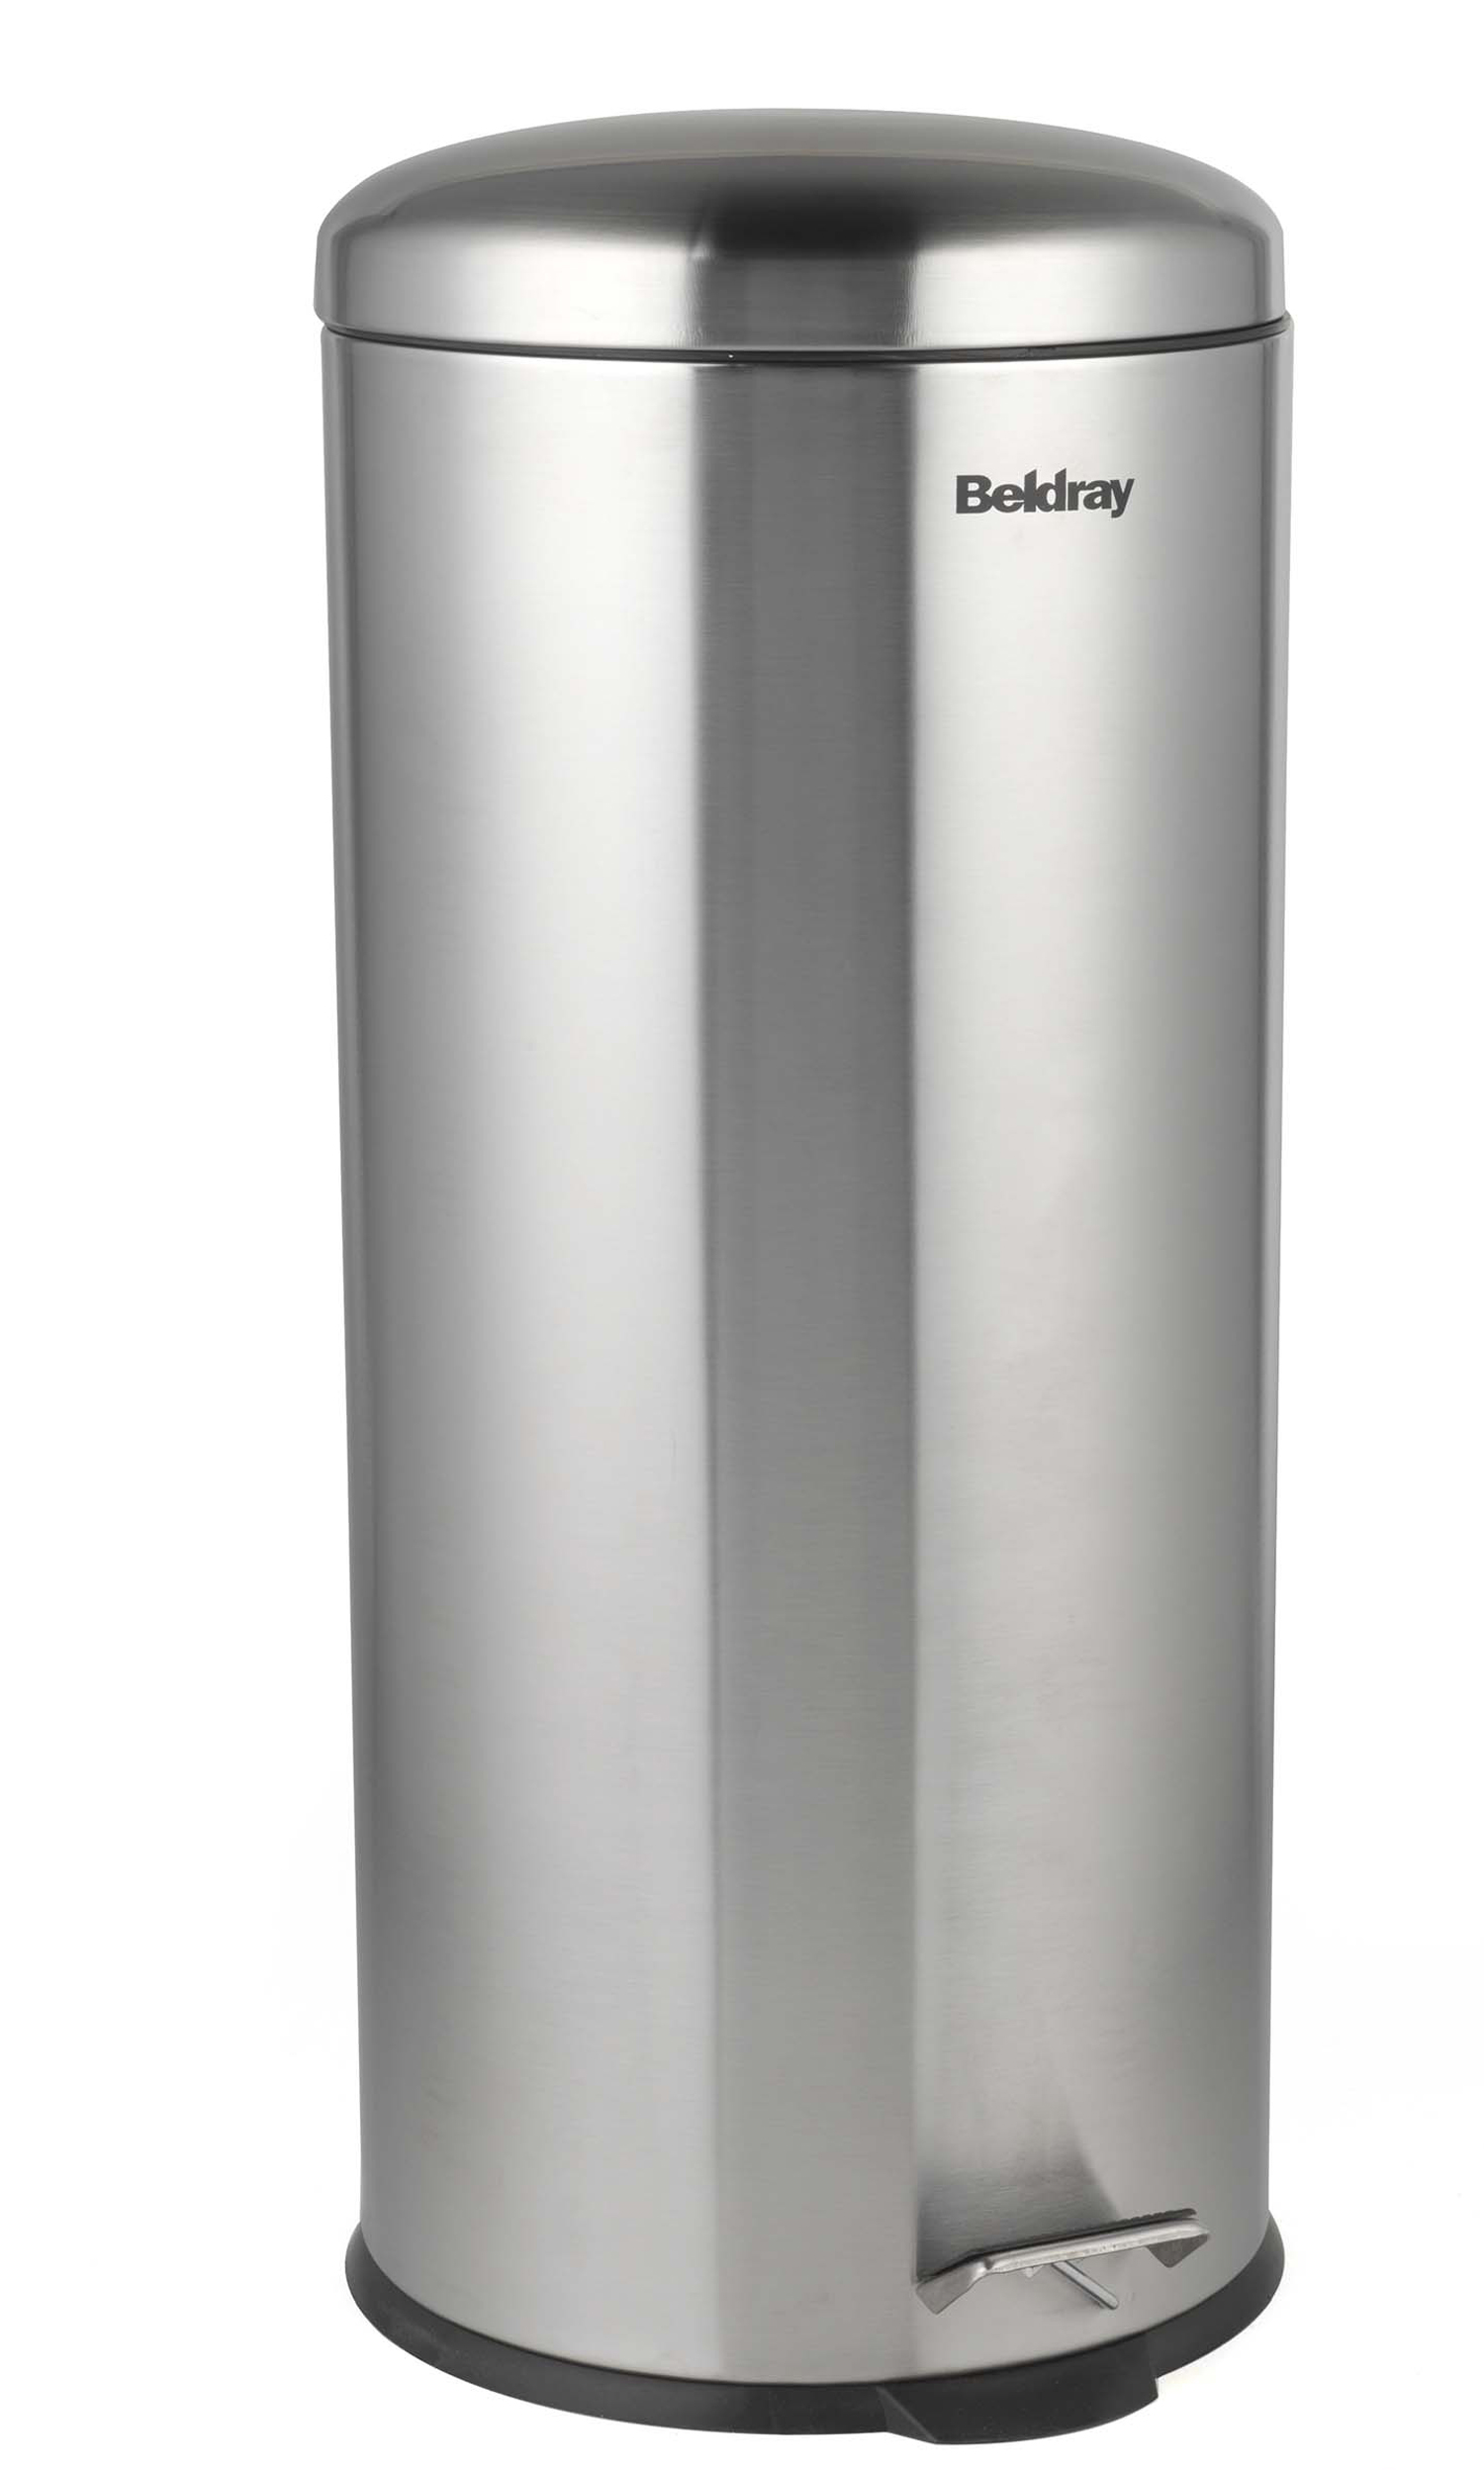 Beldray la ss litre stainless steel kitchen bin